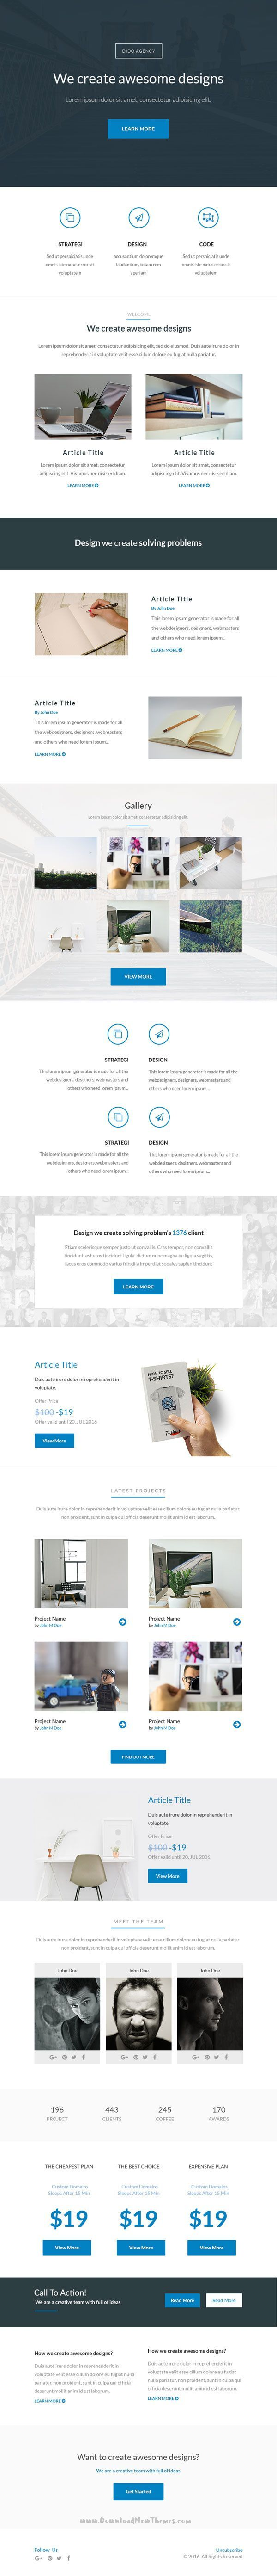 Dido Best Premium Simple and Modern Responsive Email Template Download #marketing #emailtemplate #viral